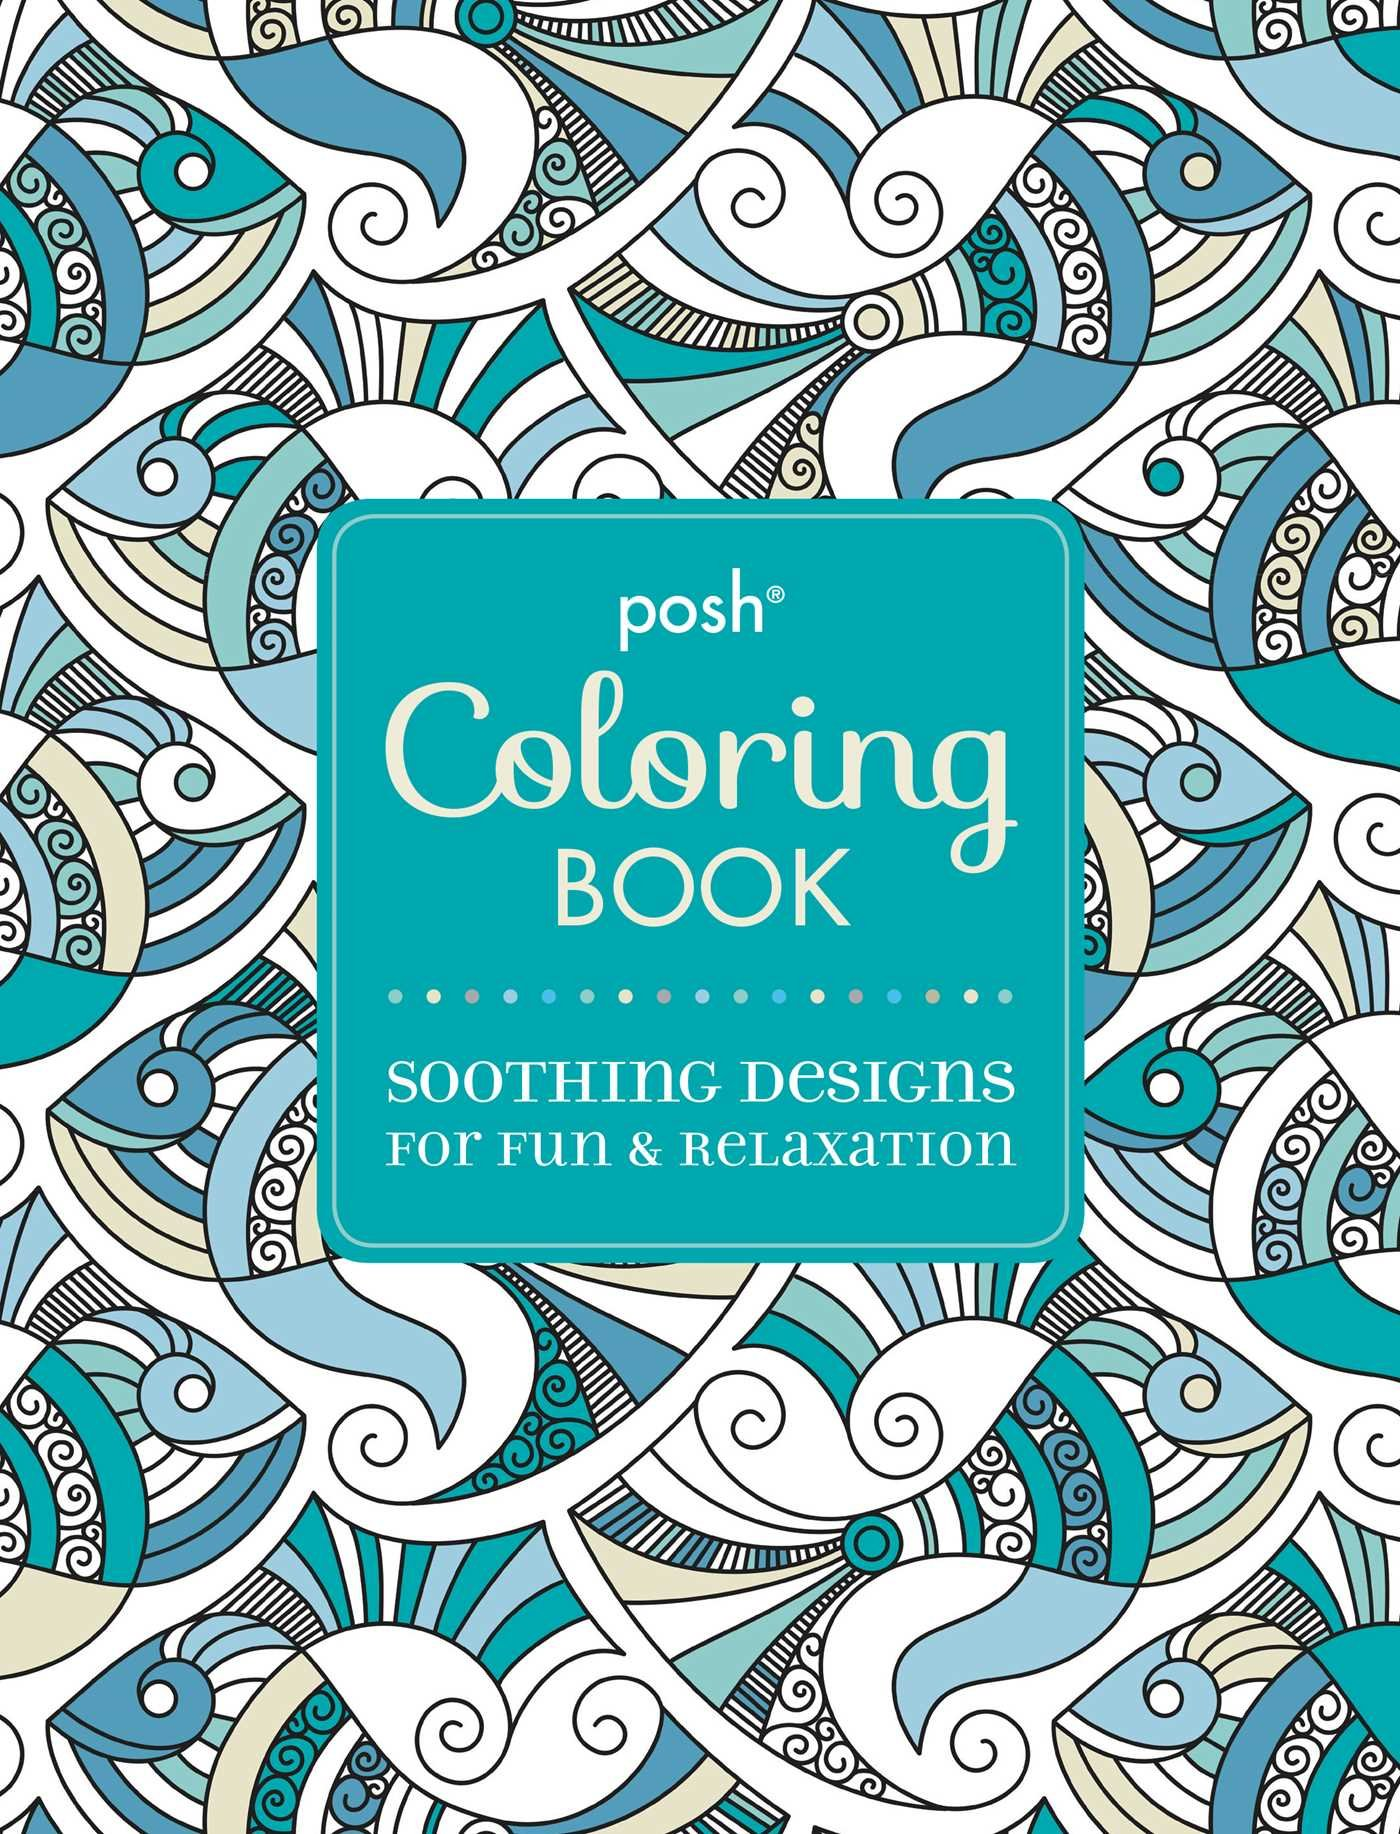 Posh Adult Coloring Book Soothing Designs For Fun Relaxation Andrews McMeel Publishing 0050837348899 Books